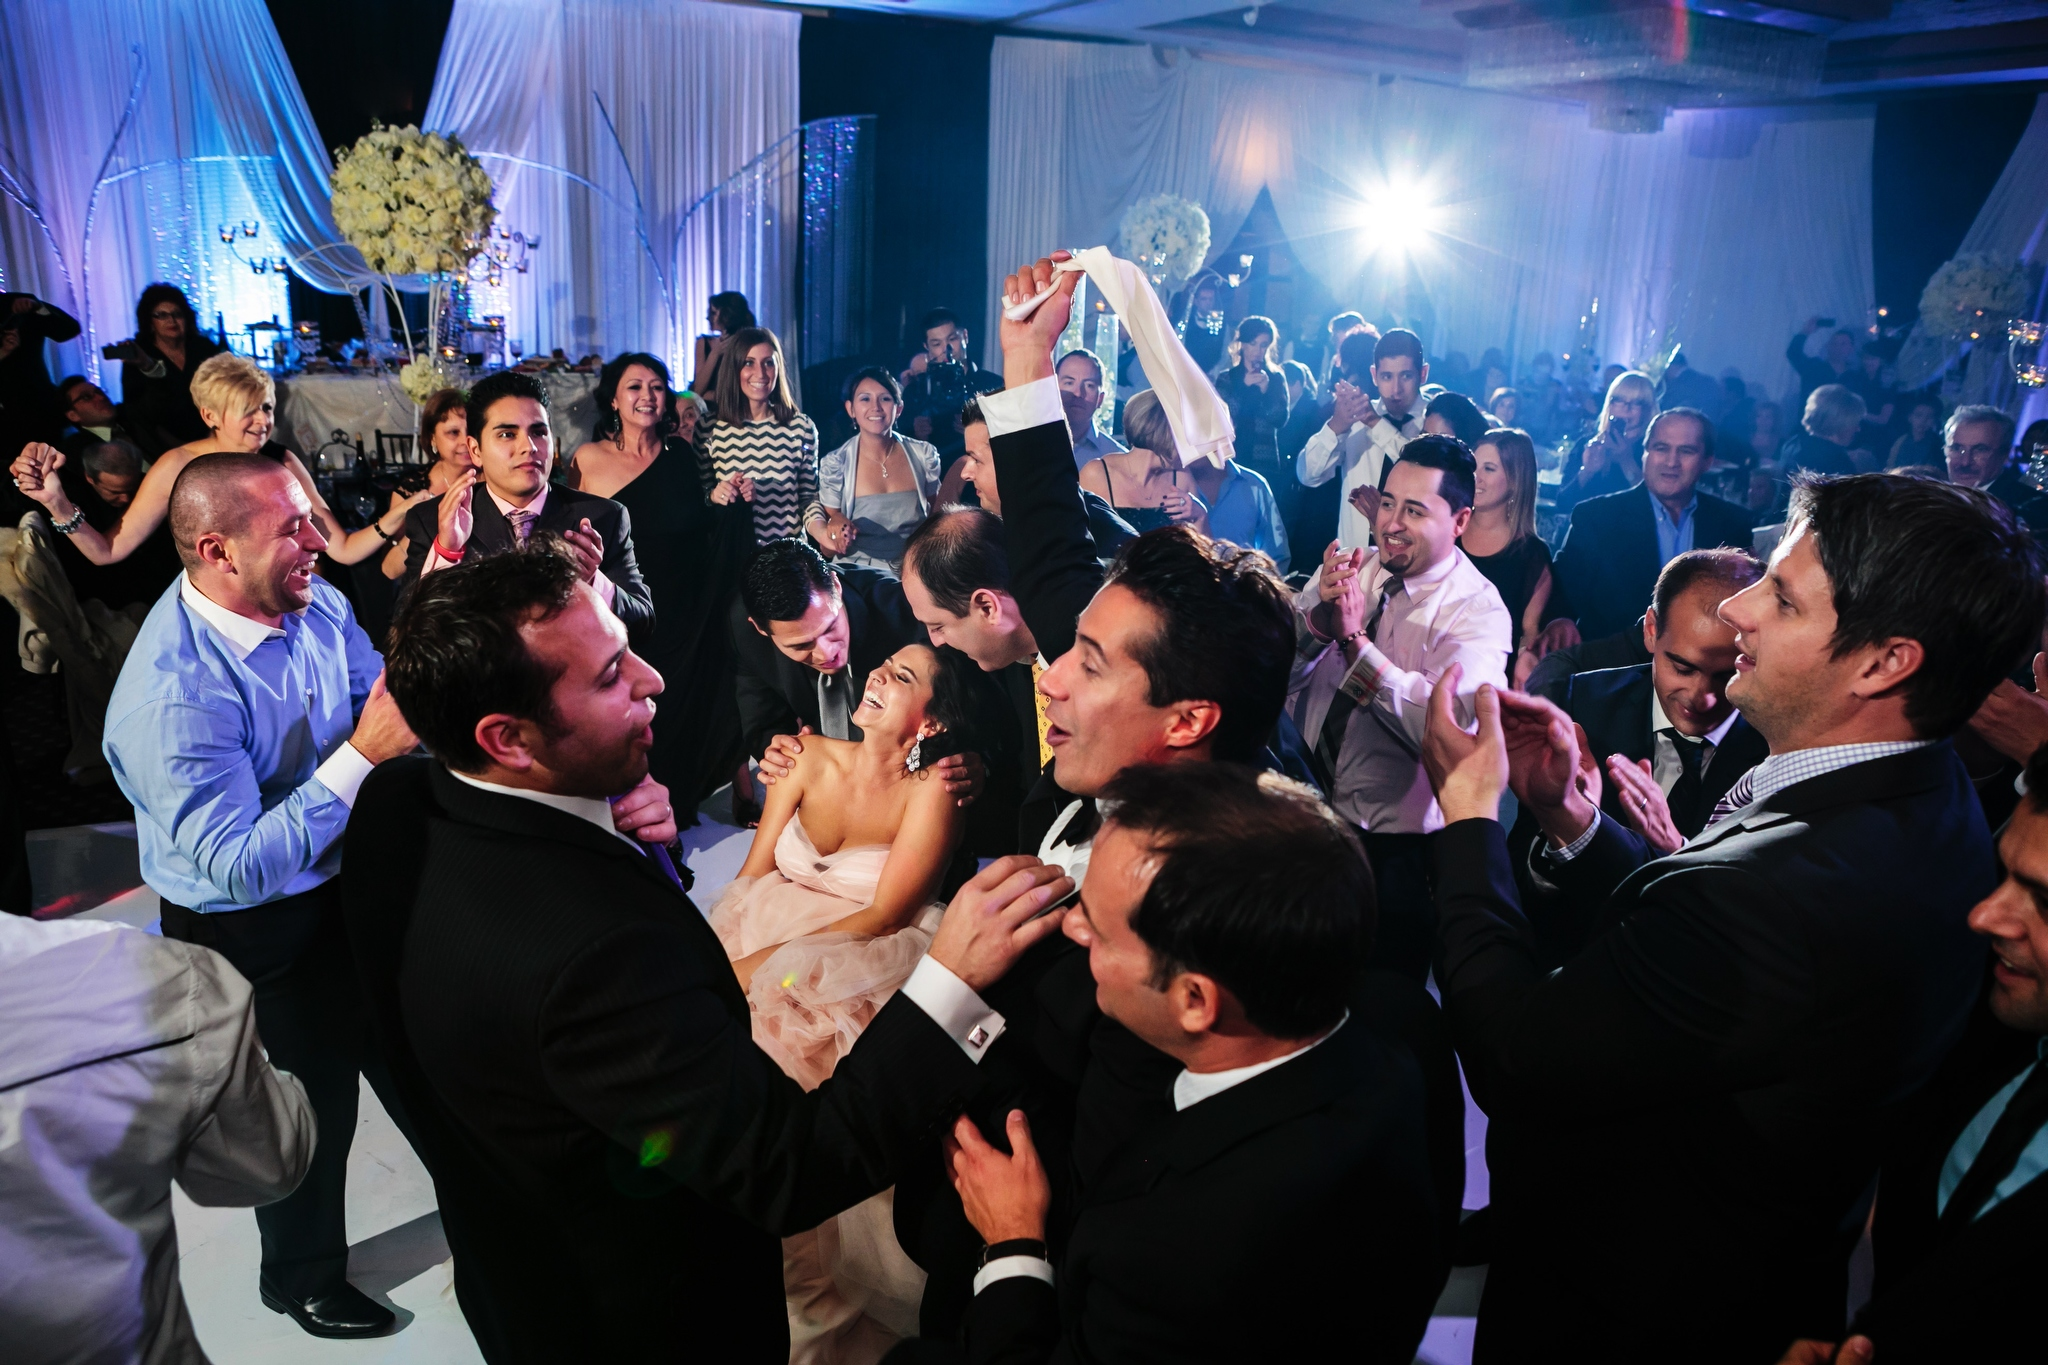 Epic and Layered Wedding Reception Photography